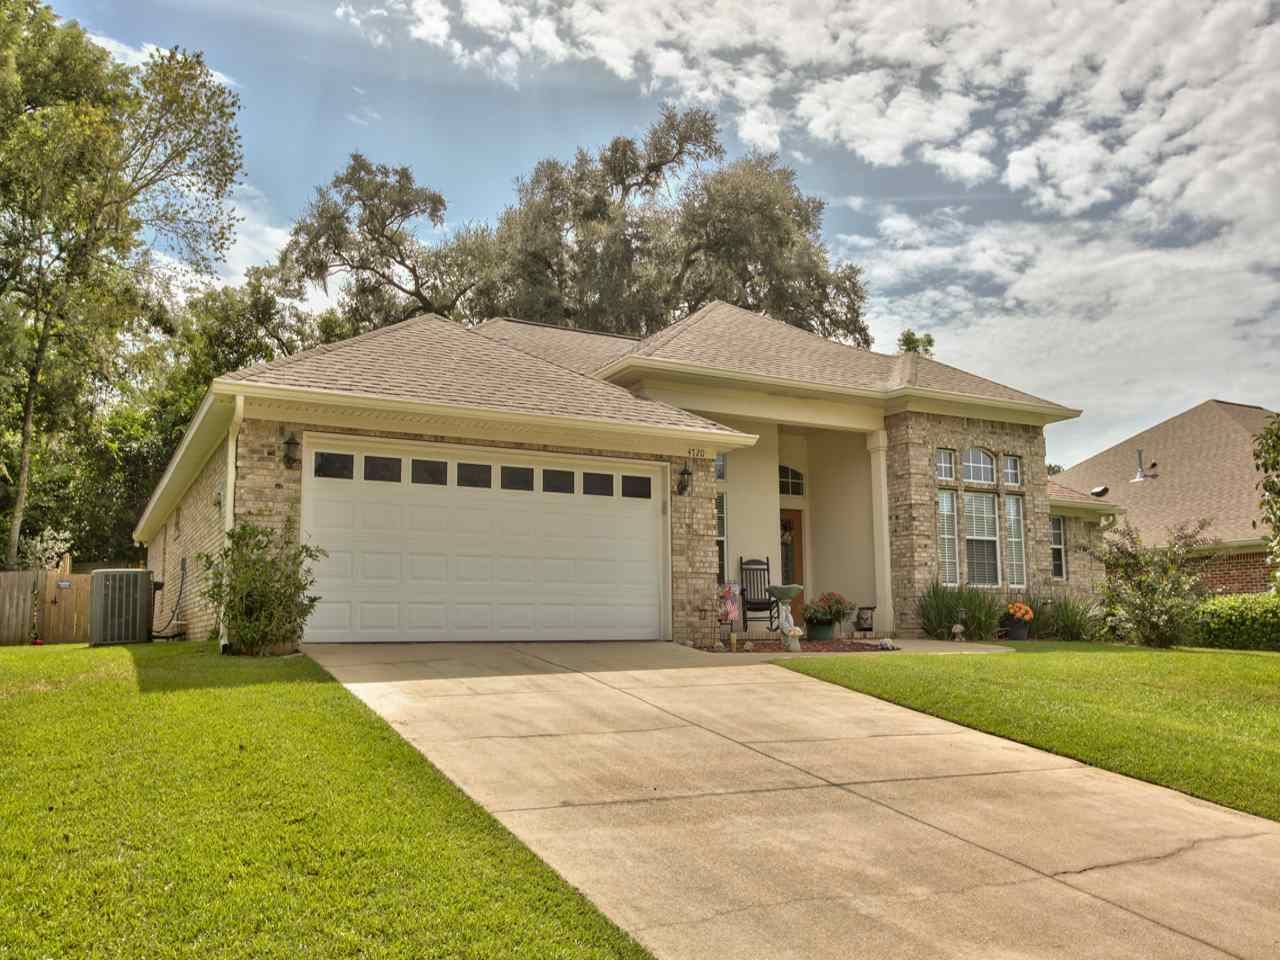 4720 Plantation View Drive, Tallahassee, FL 32311 - MLS#: 323880